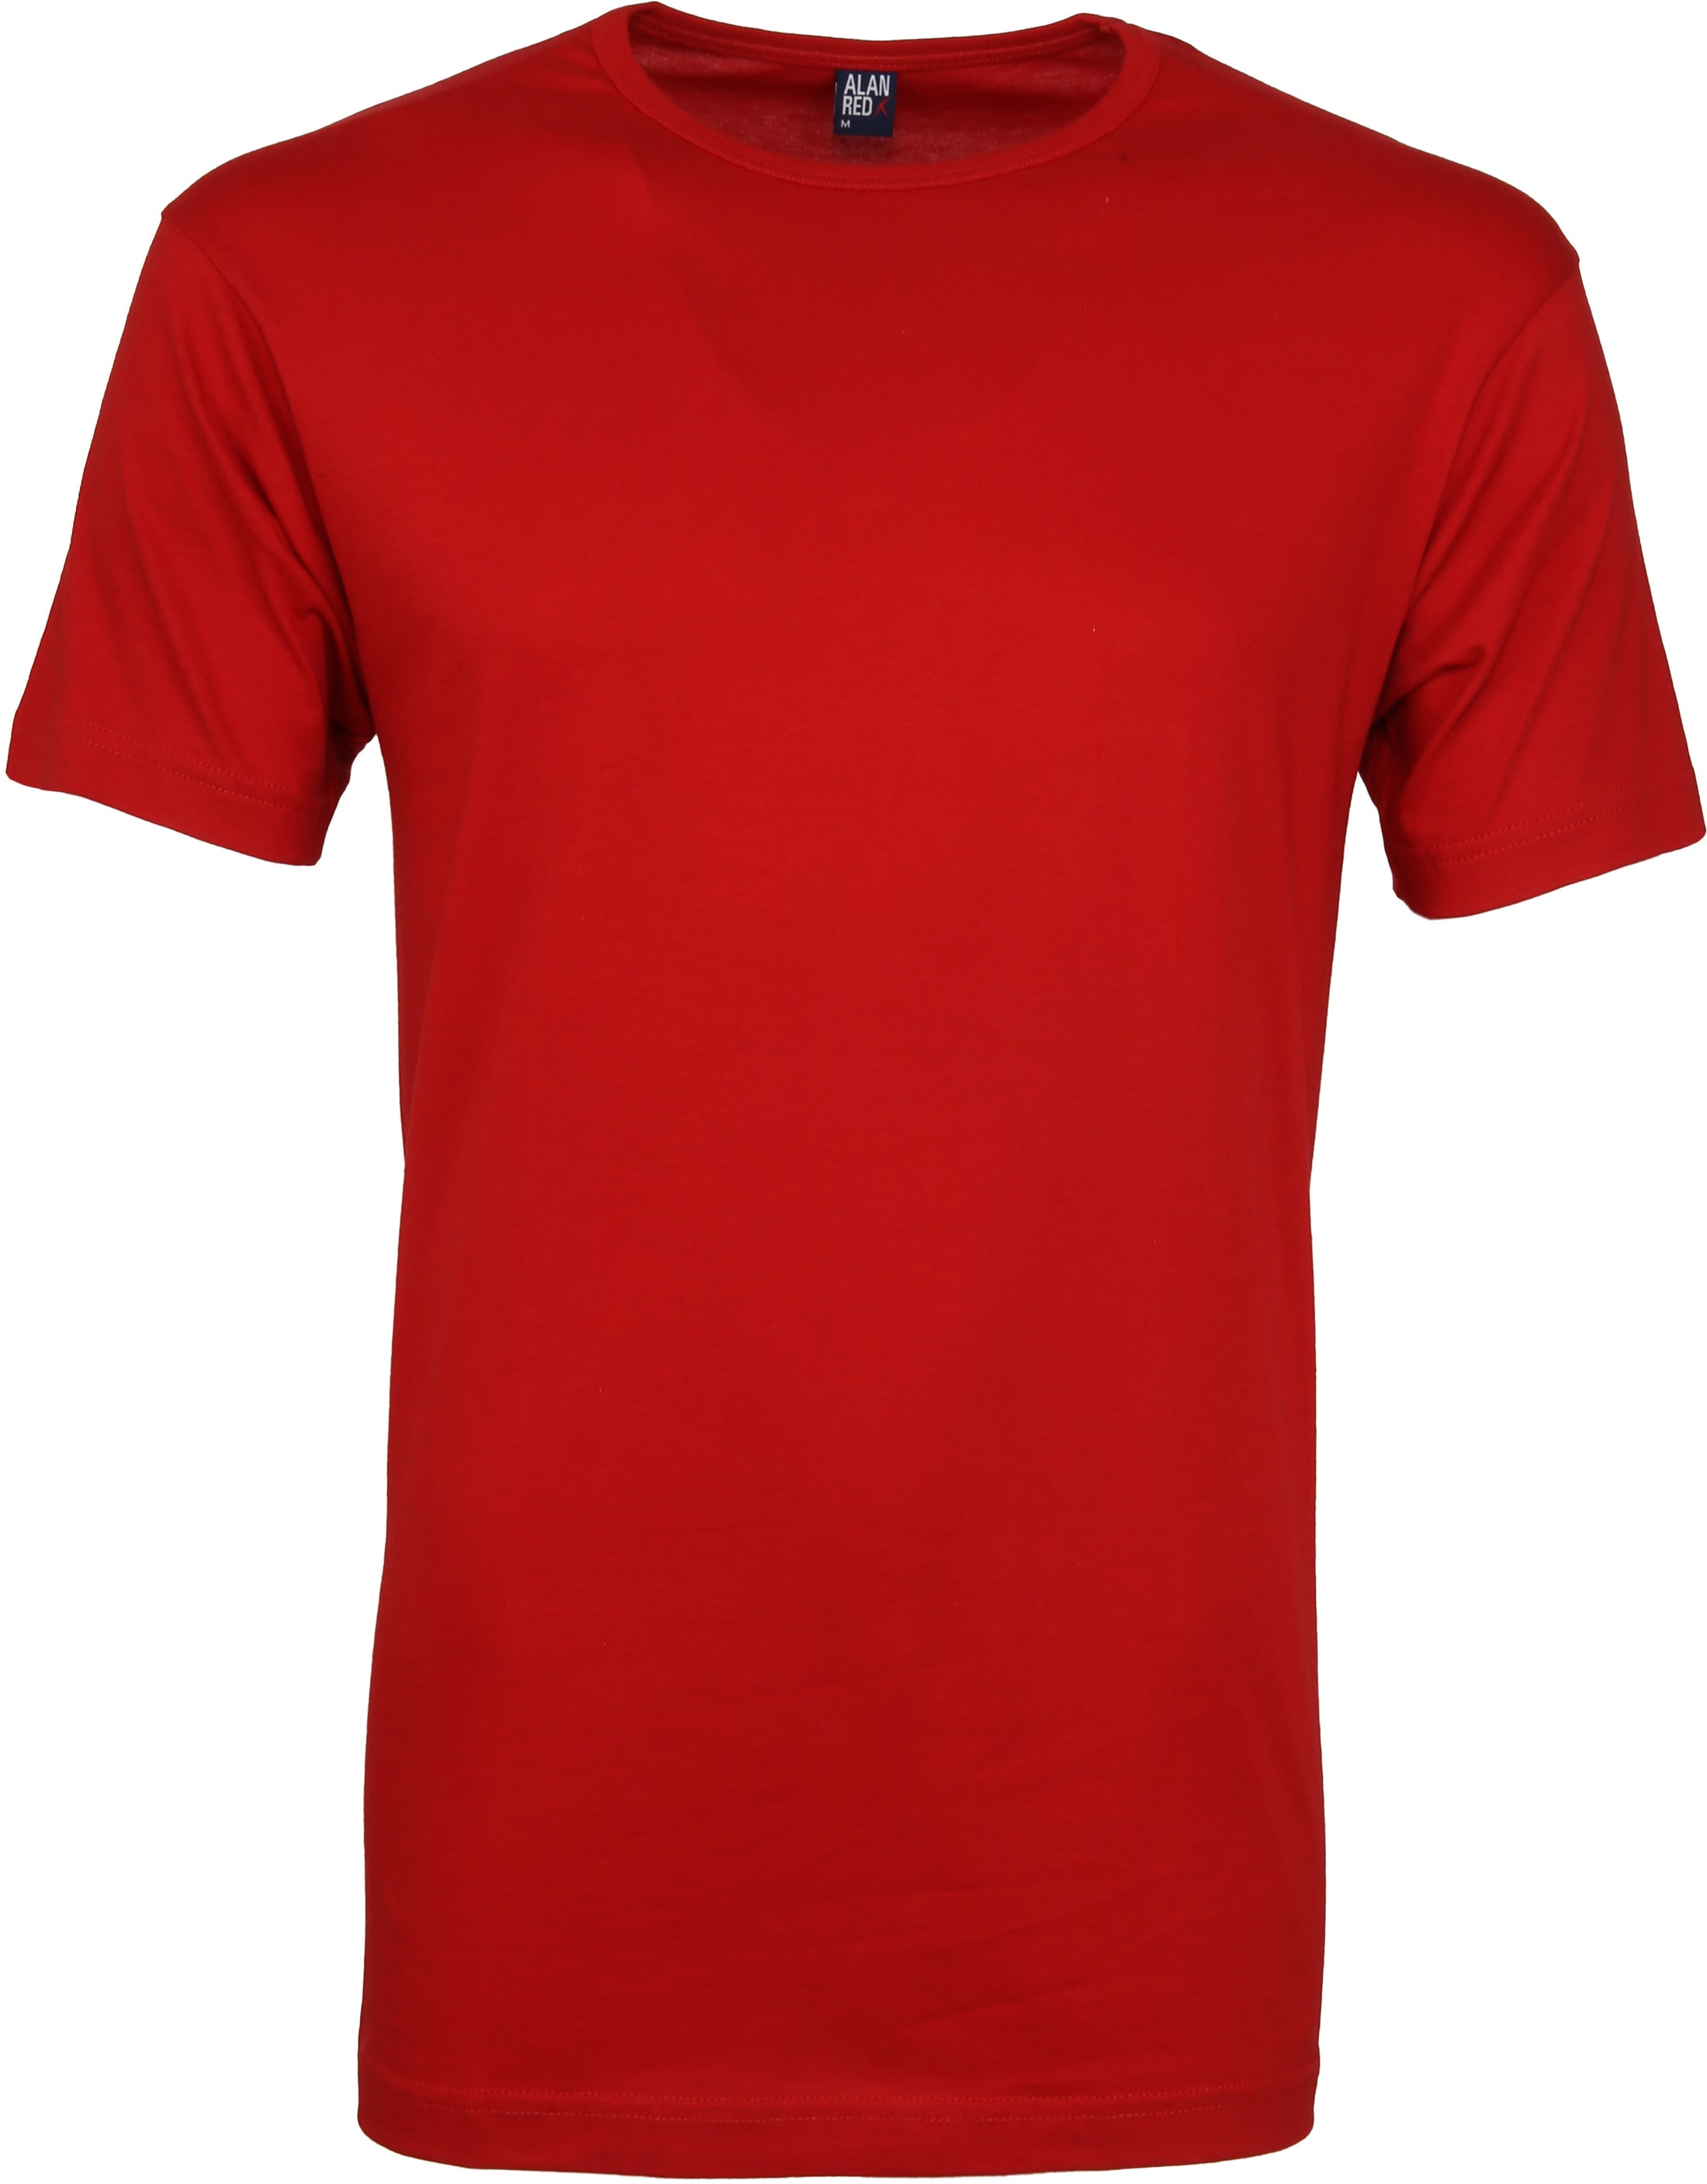 Alan Red Derby R-Neck T-Shirt Stone Red (2Pack) foto 1